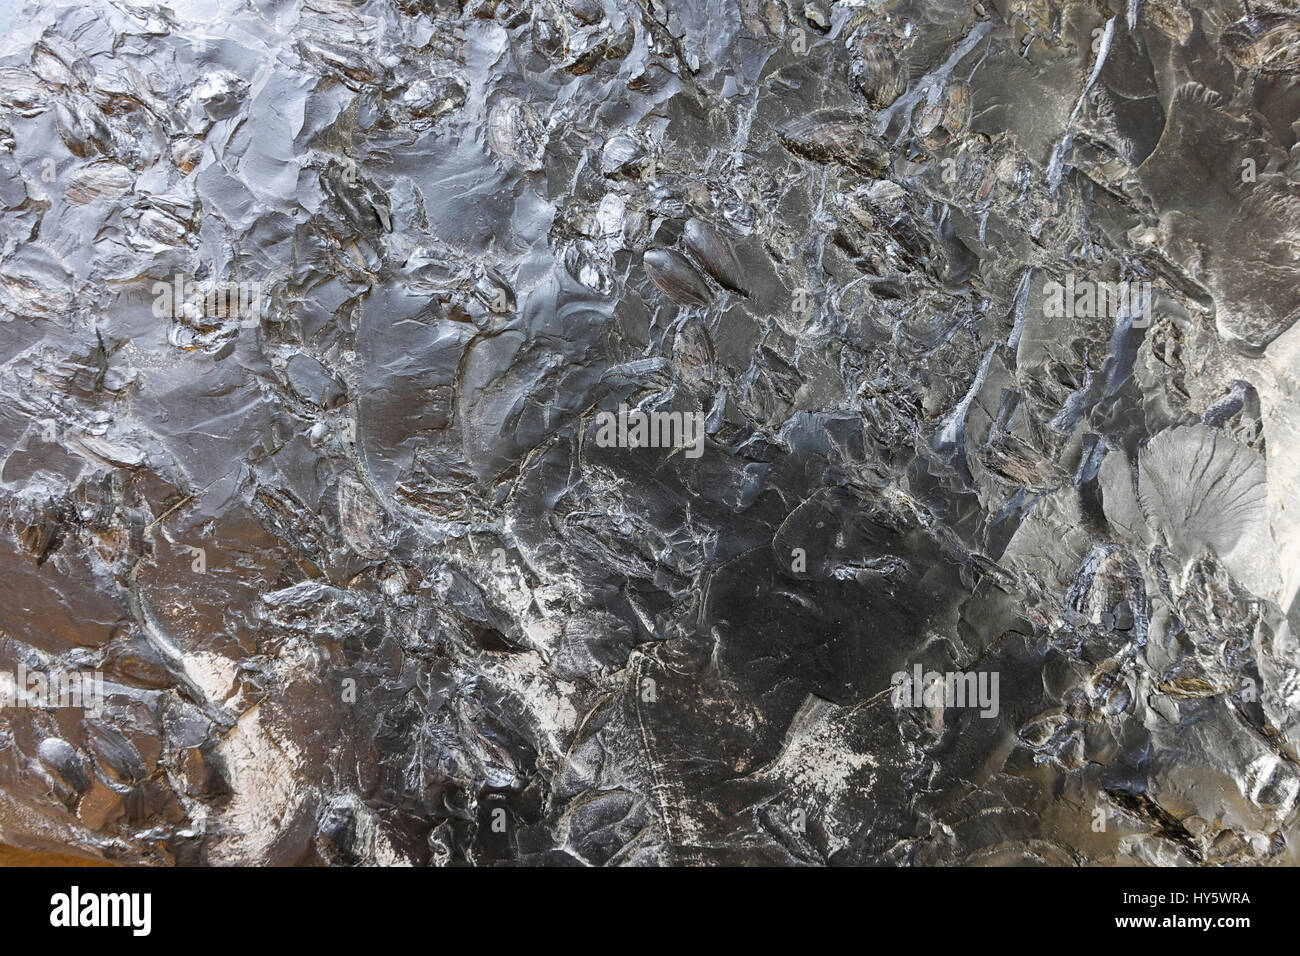 Surface of coal rock, geology, Carboniferous Period. Netherlands. Stock Photo